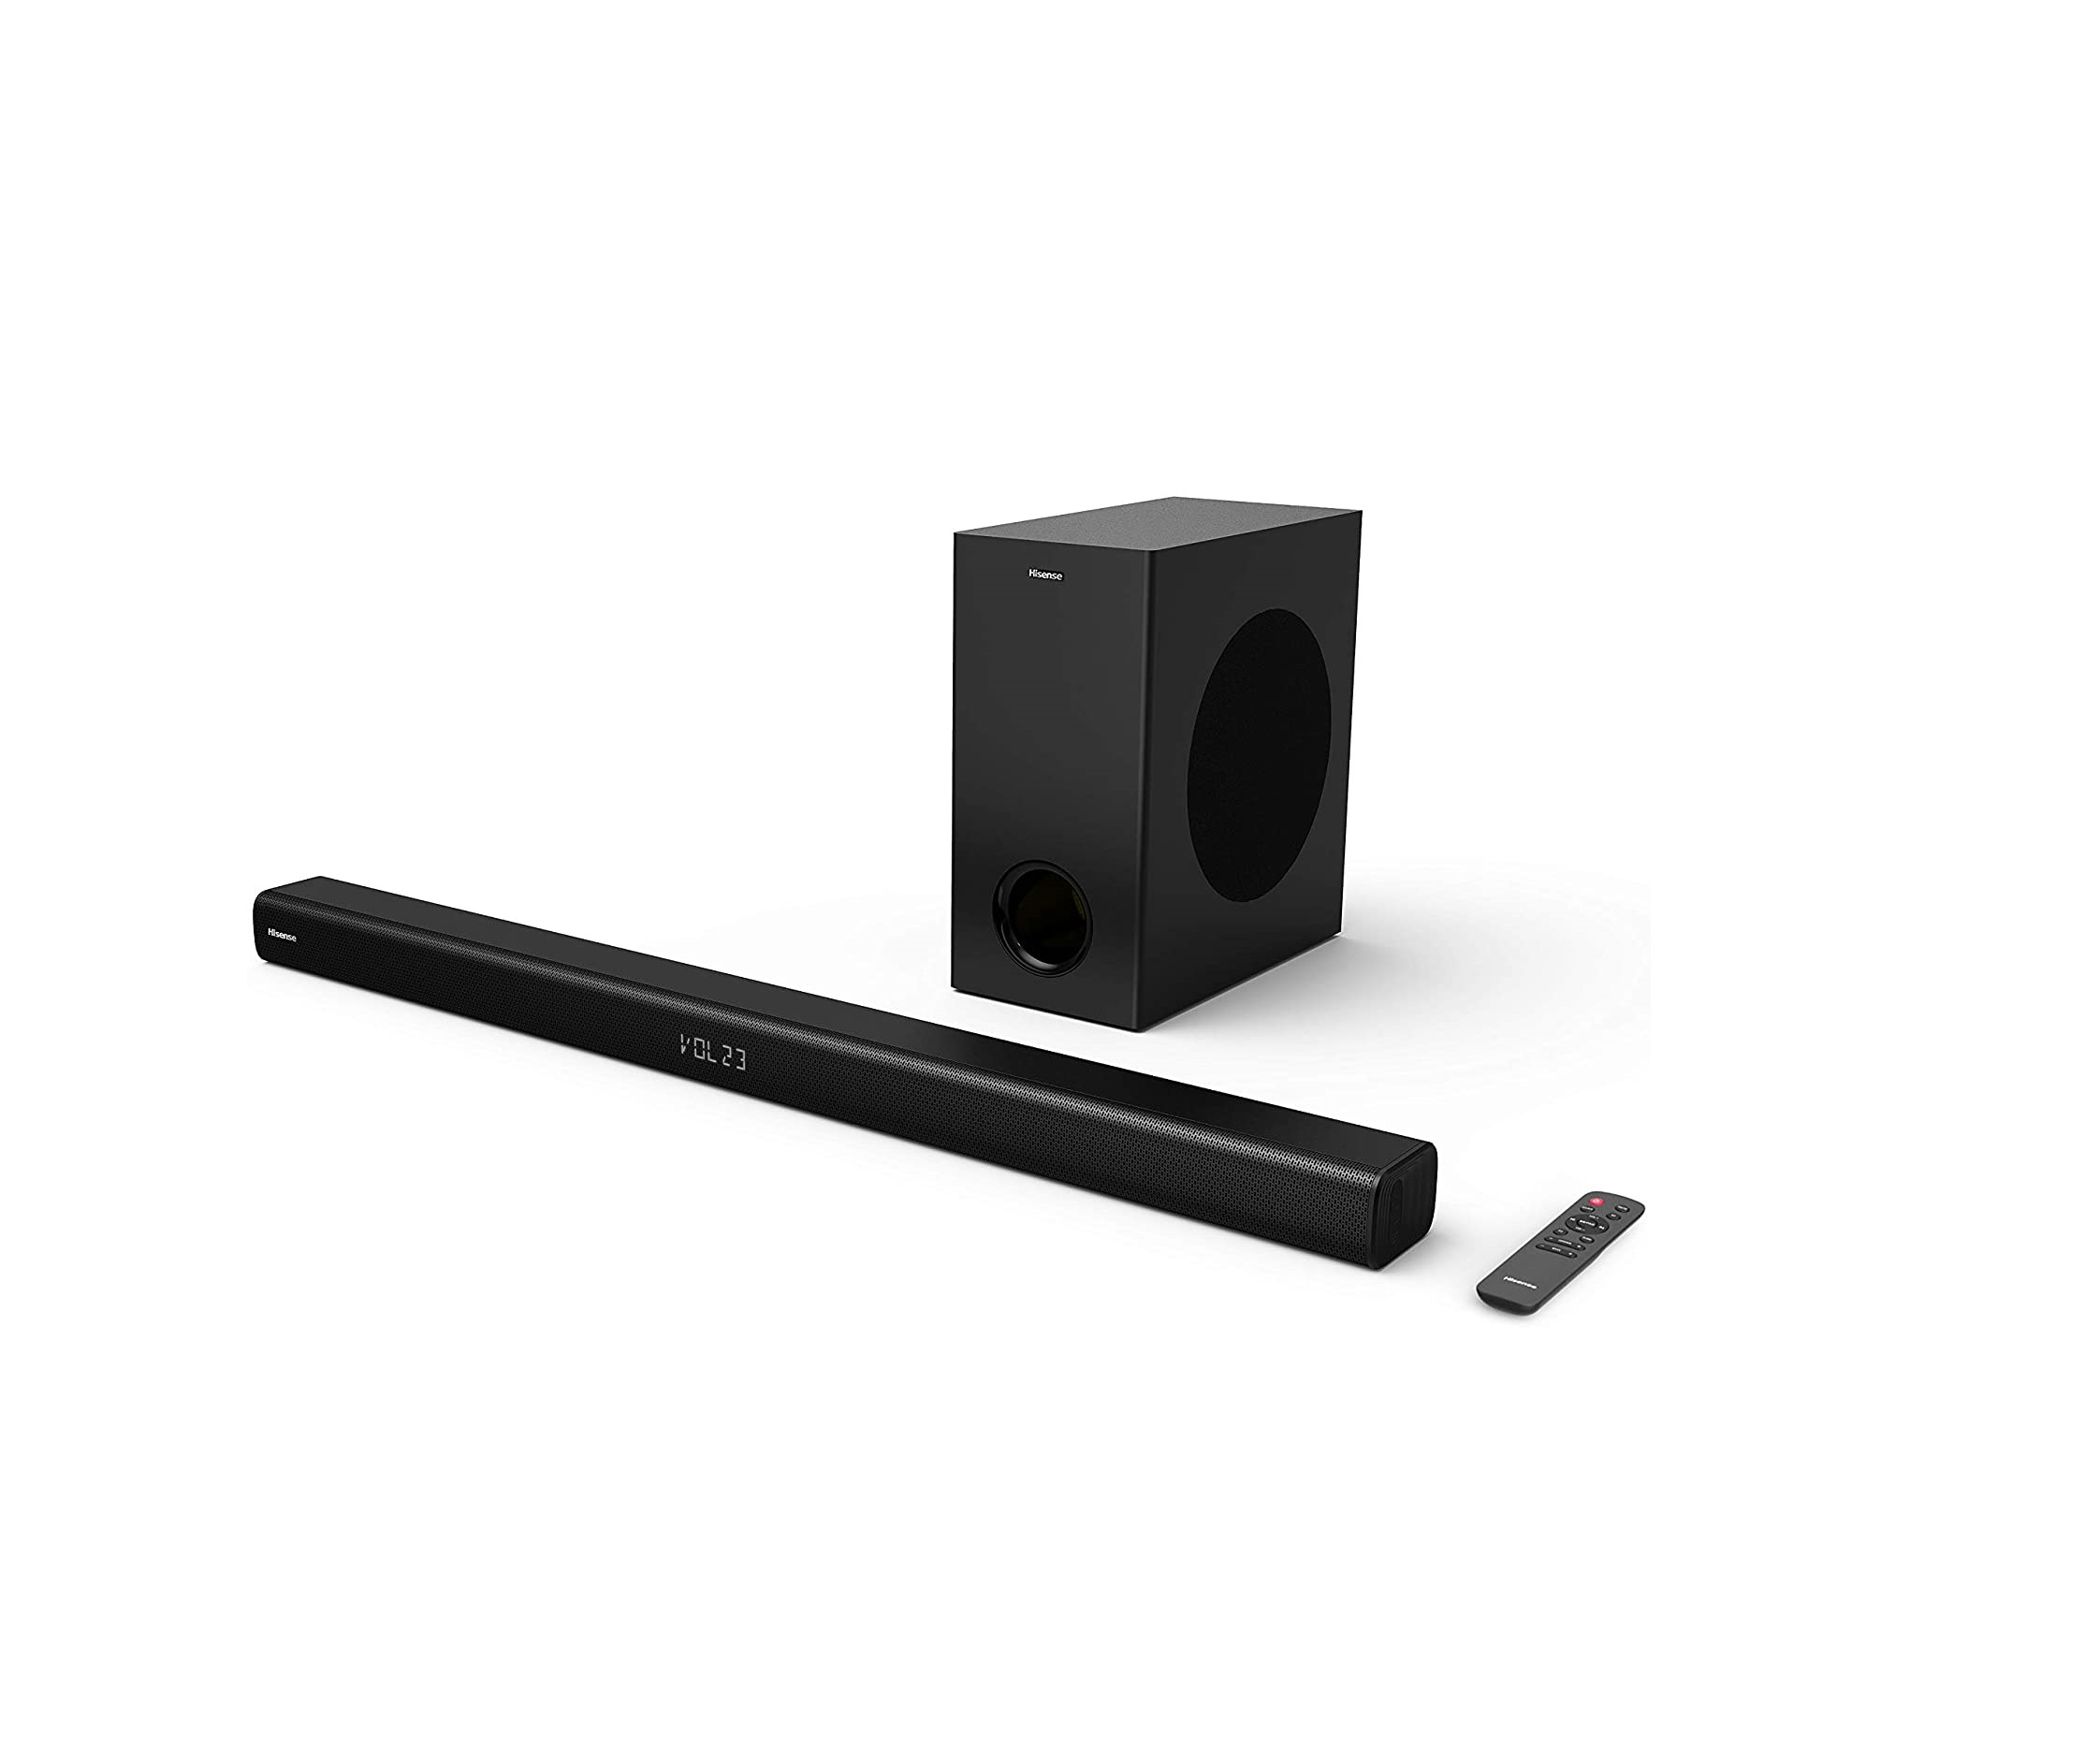 Hisense 200watts Bluetooth Sound Bar – HS218